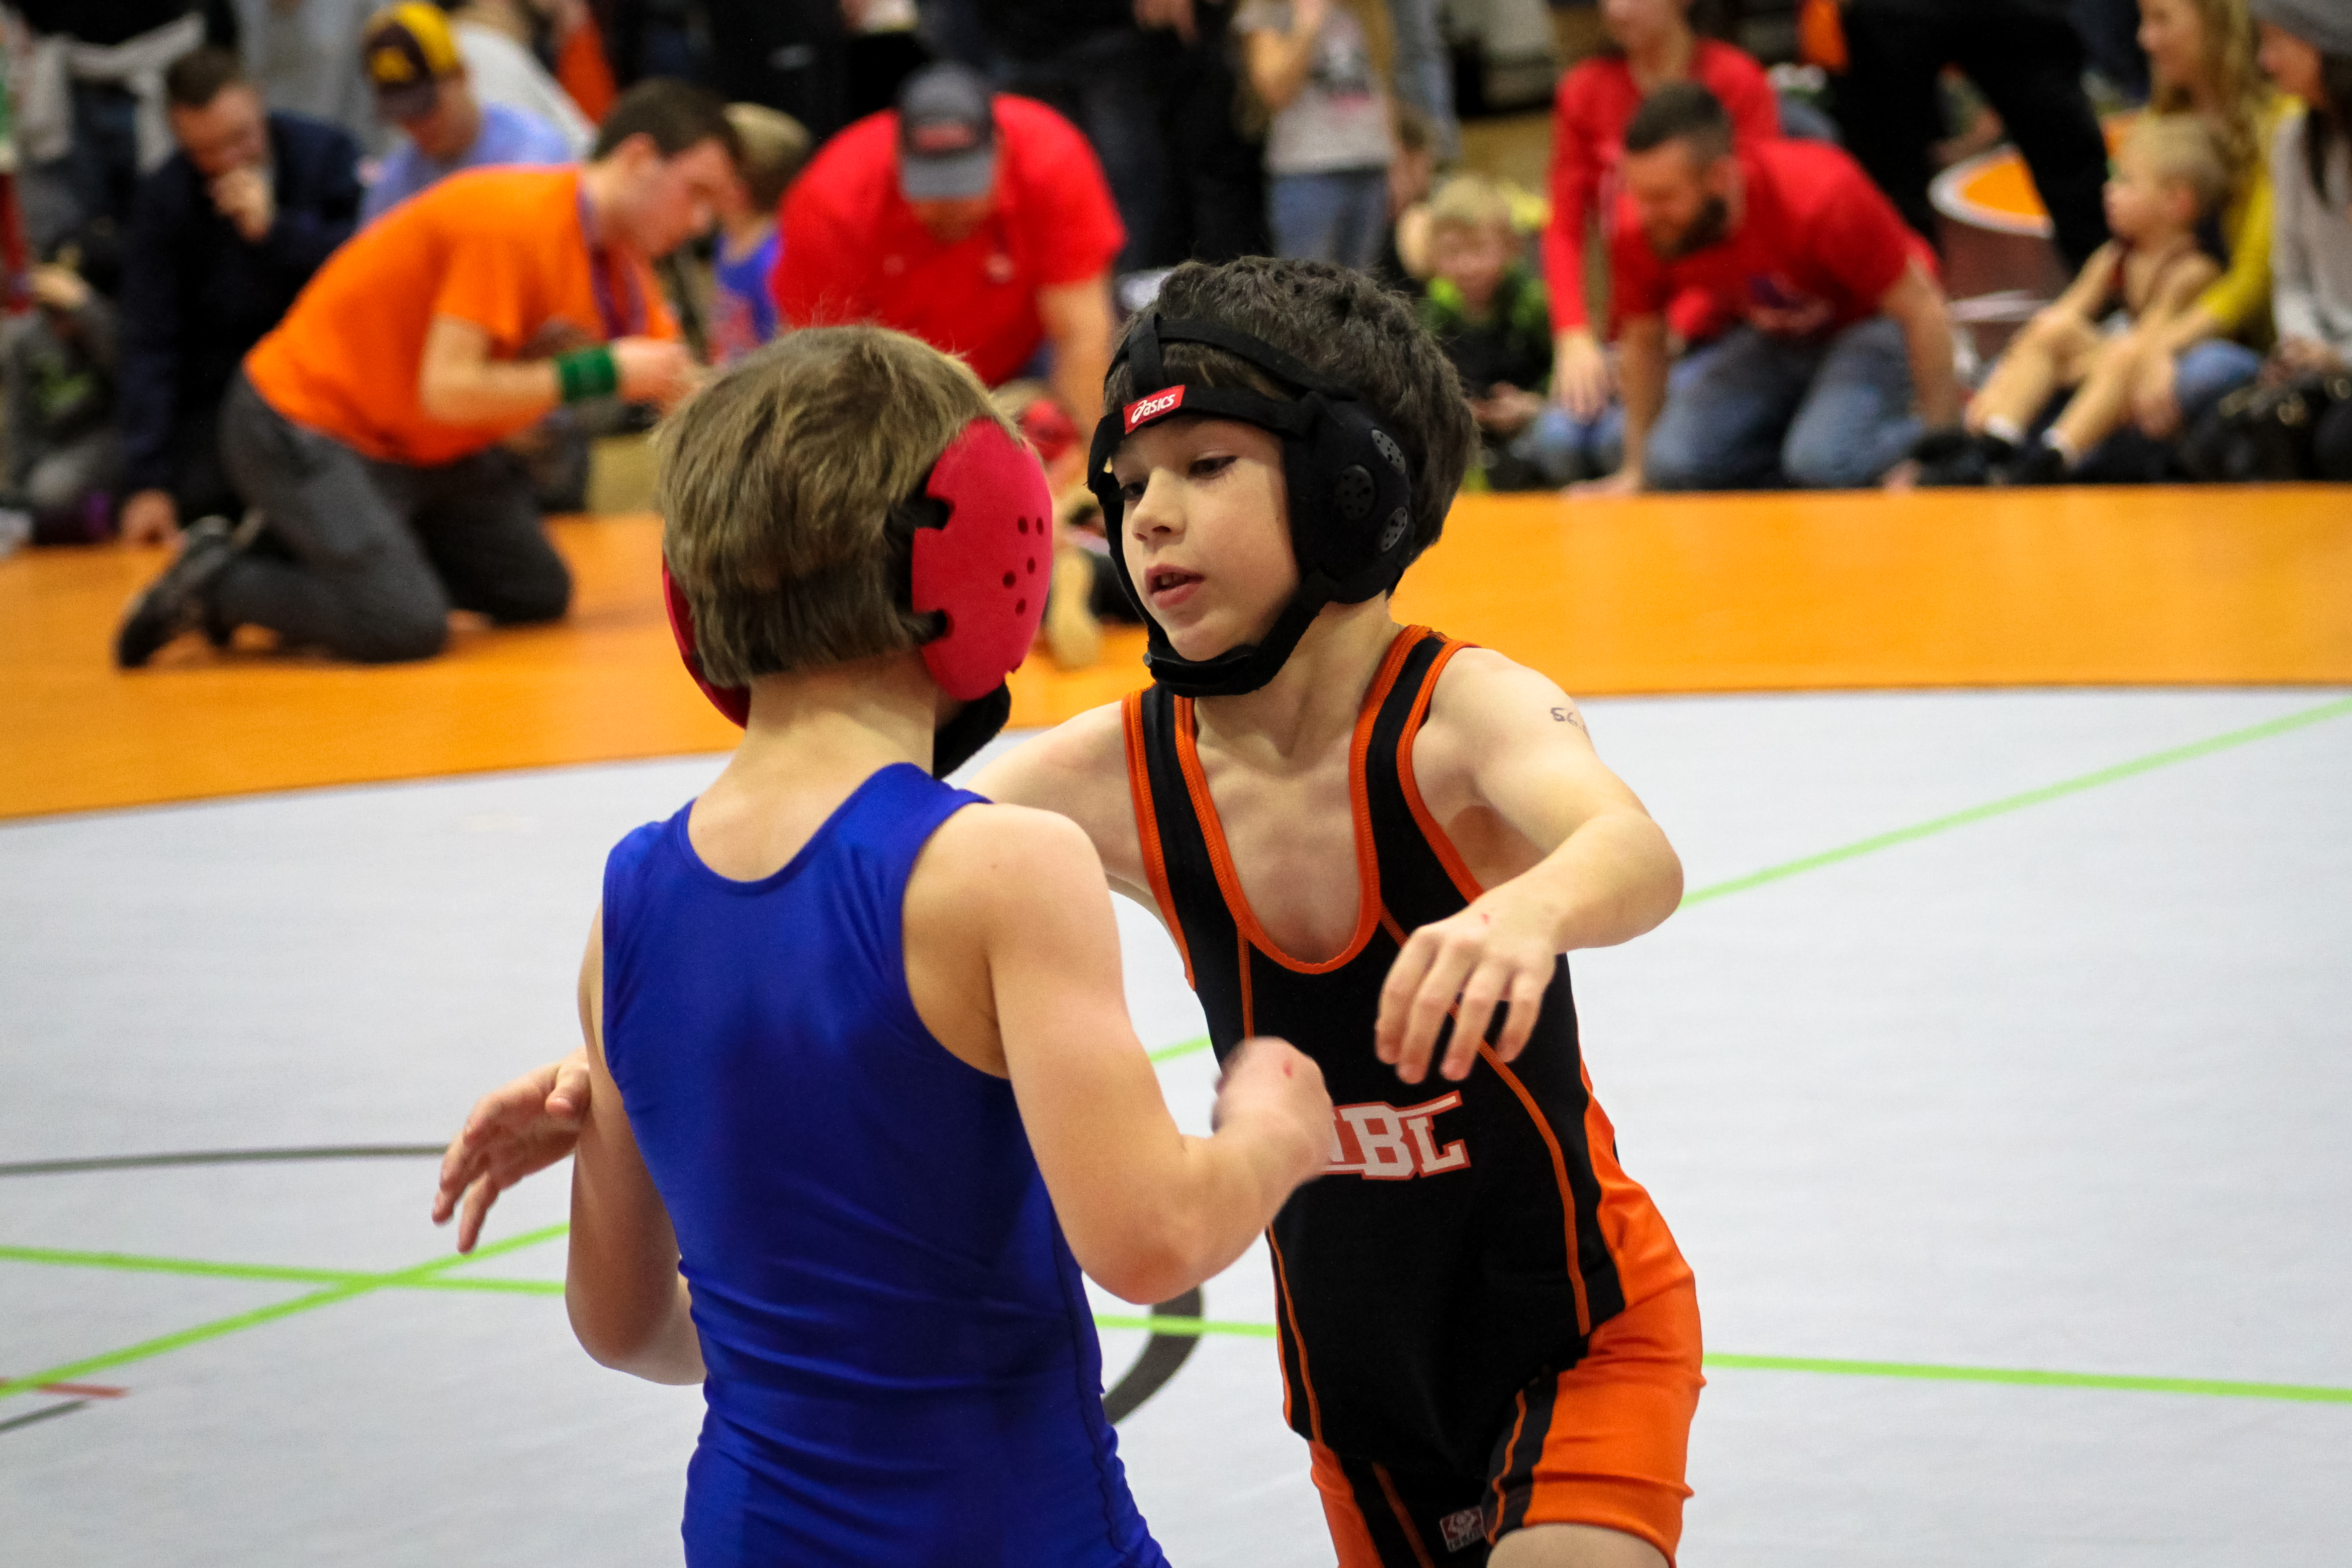 White Bear Youth Wrestling